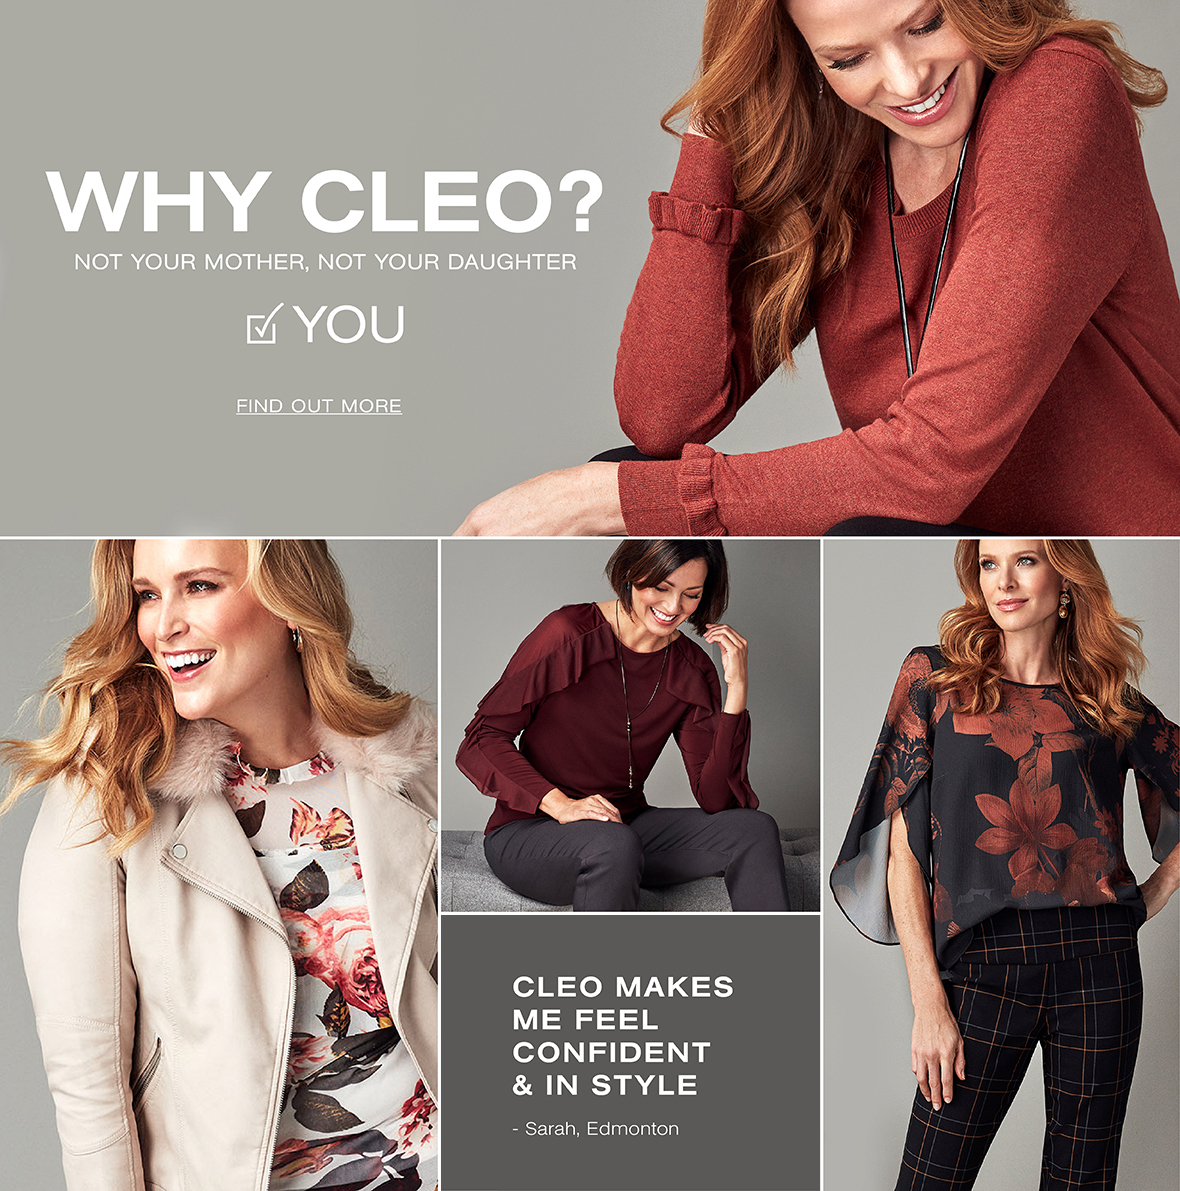 Why Cleo? Not your daughter, not your mother. You. Cleo makes me feel confident and in style. Sarah, Edmonton